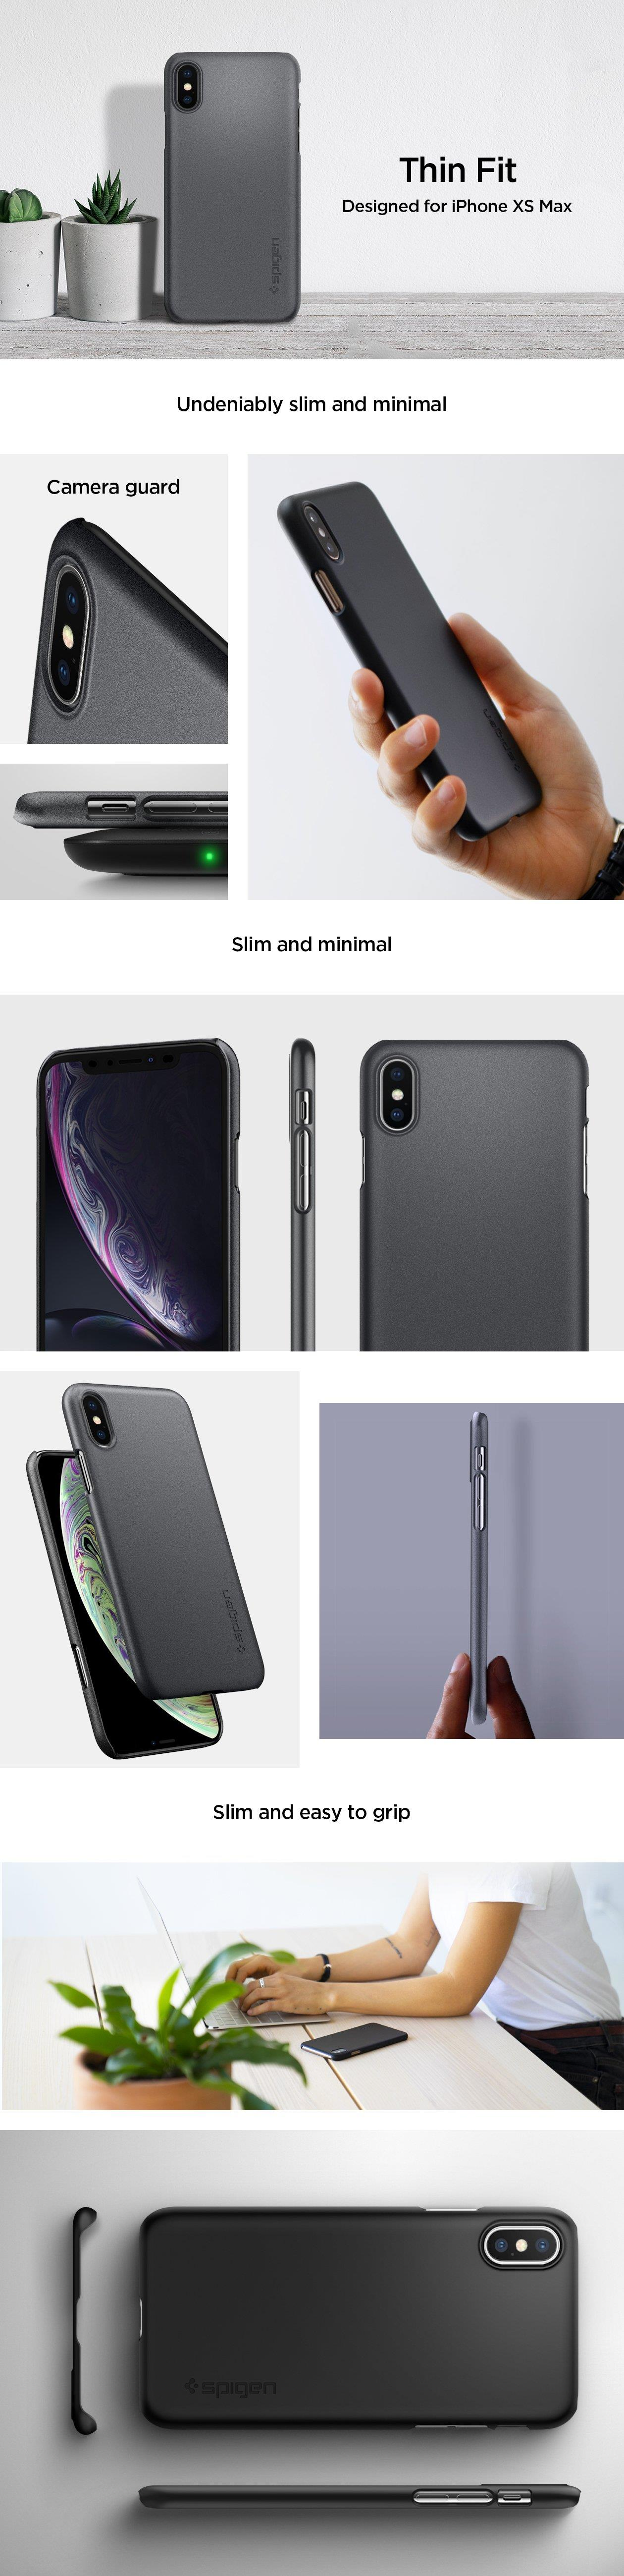 Buy The Spigen Iphone Xs Max 65 Thin Fit Caseblack Exact Case Robot 5g 5s Precise Cutouts And Tactile Buttons Ensure Quick Access Feedback Compatible With Glastr Screen Protector